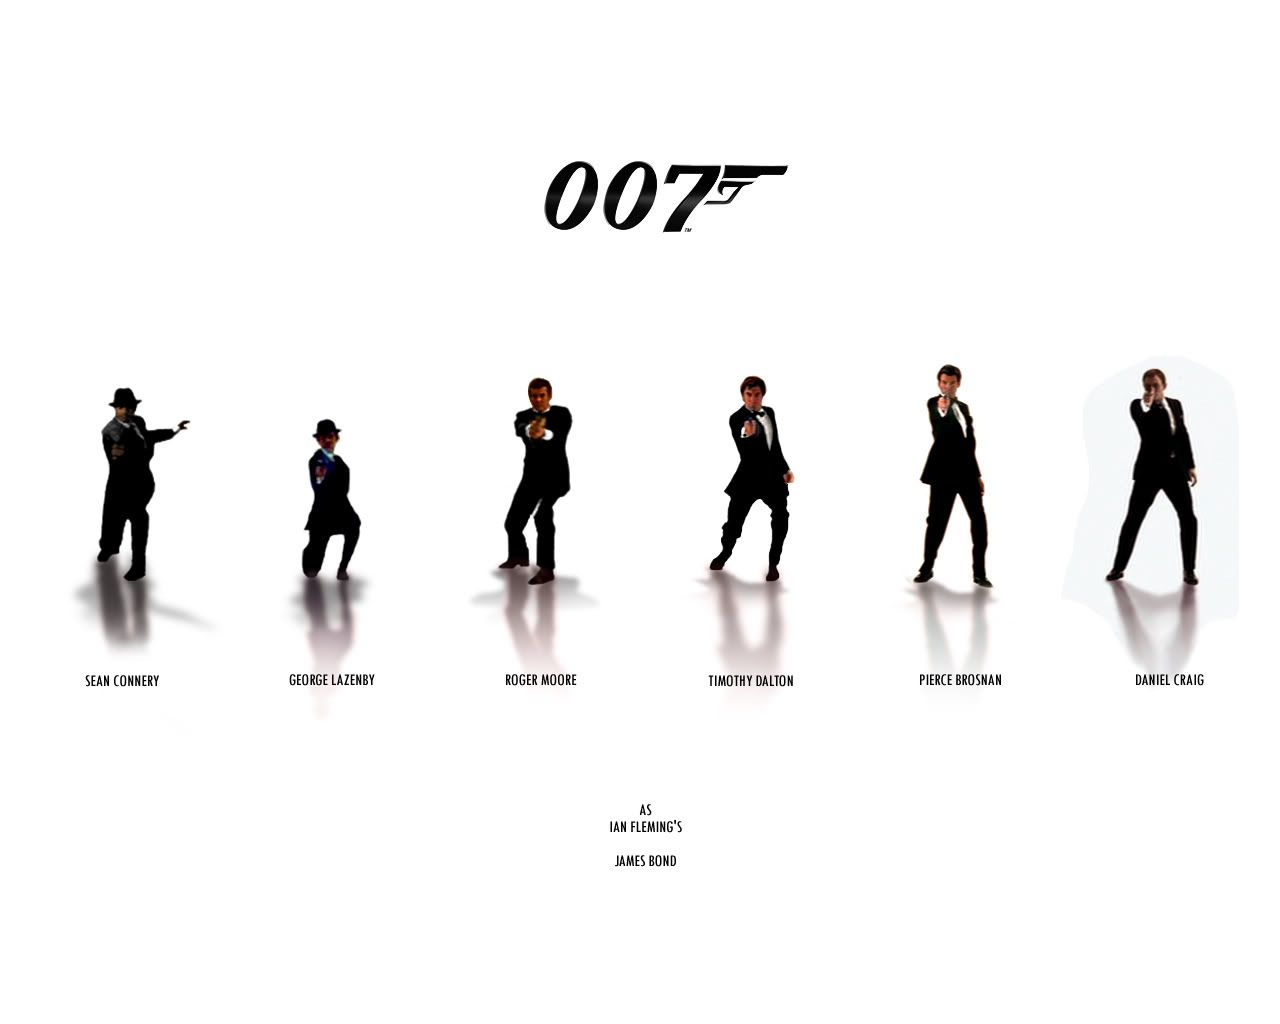 007's evolution 1280x1024 wallpapers download - desktop wallpapers